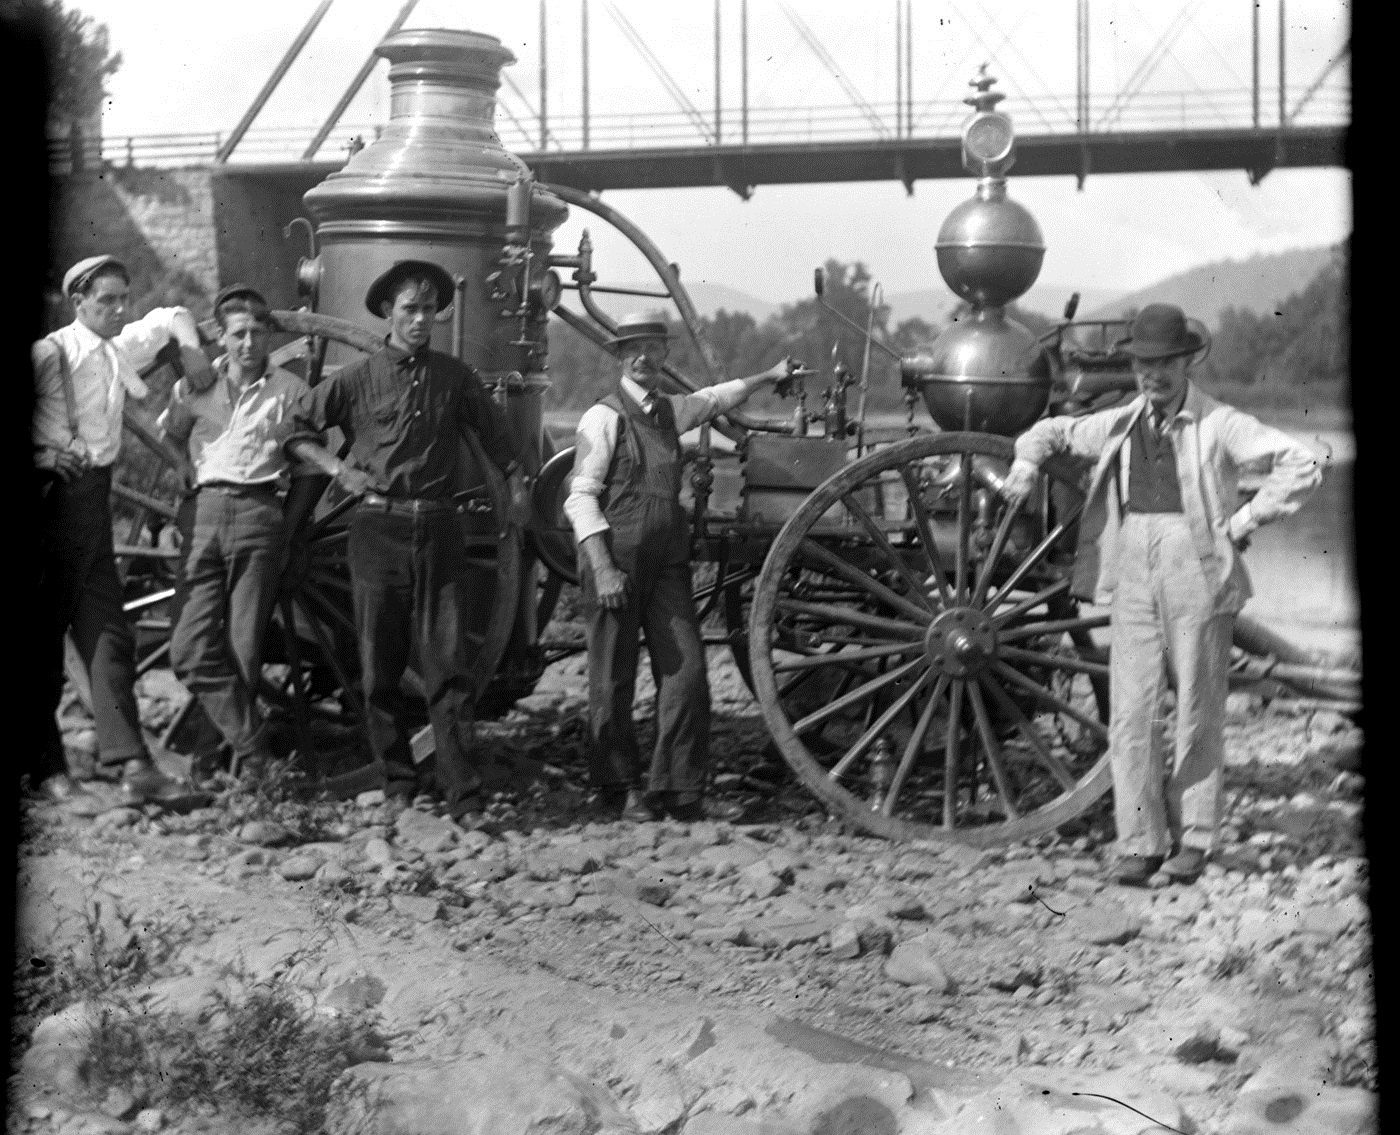 Five men standing alongside a turn-of-the-century (circa 1905-1910) spoked wheel, steam driven fire wagon.